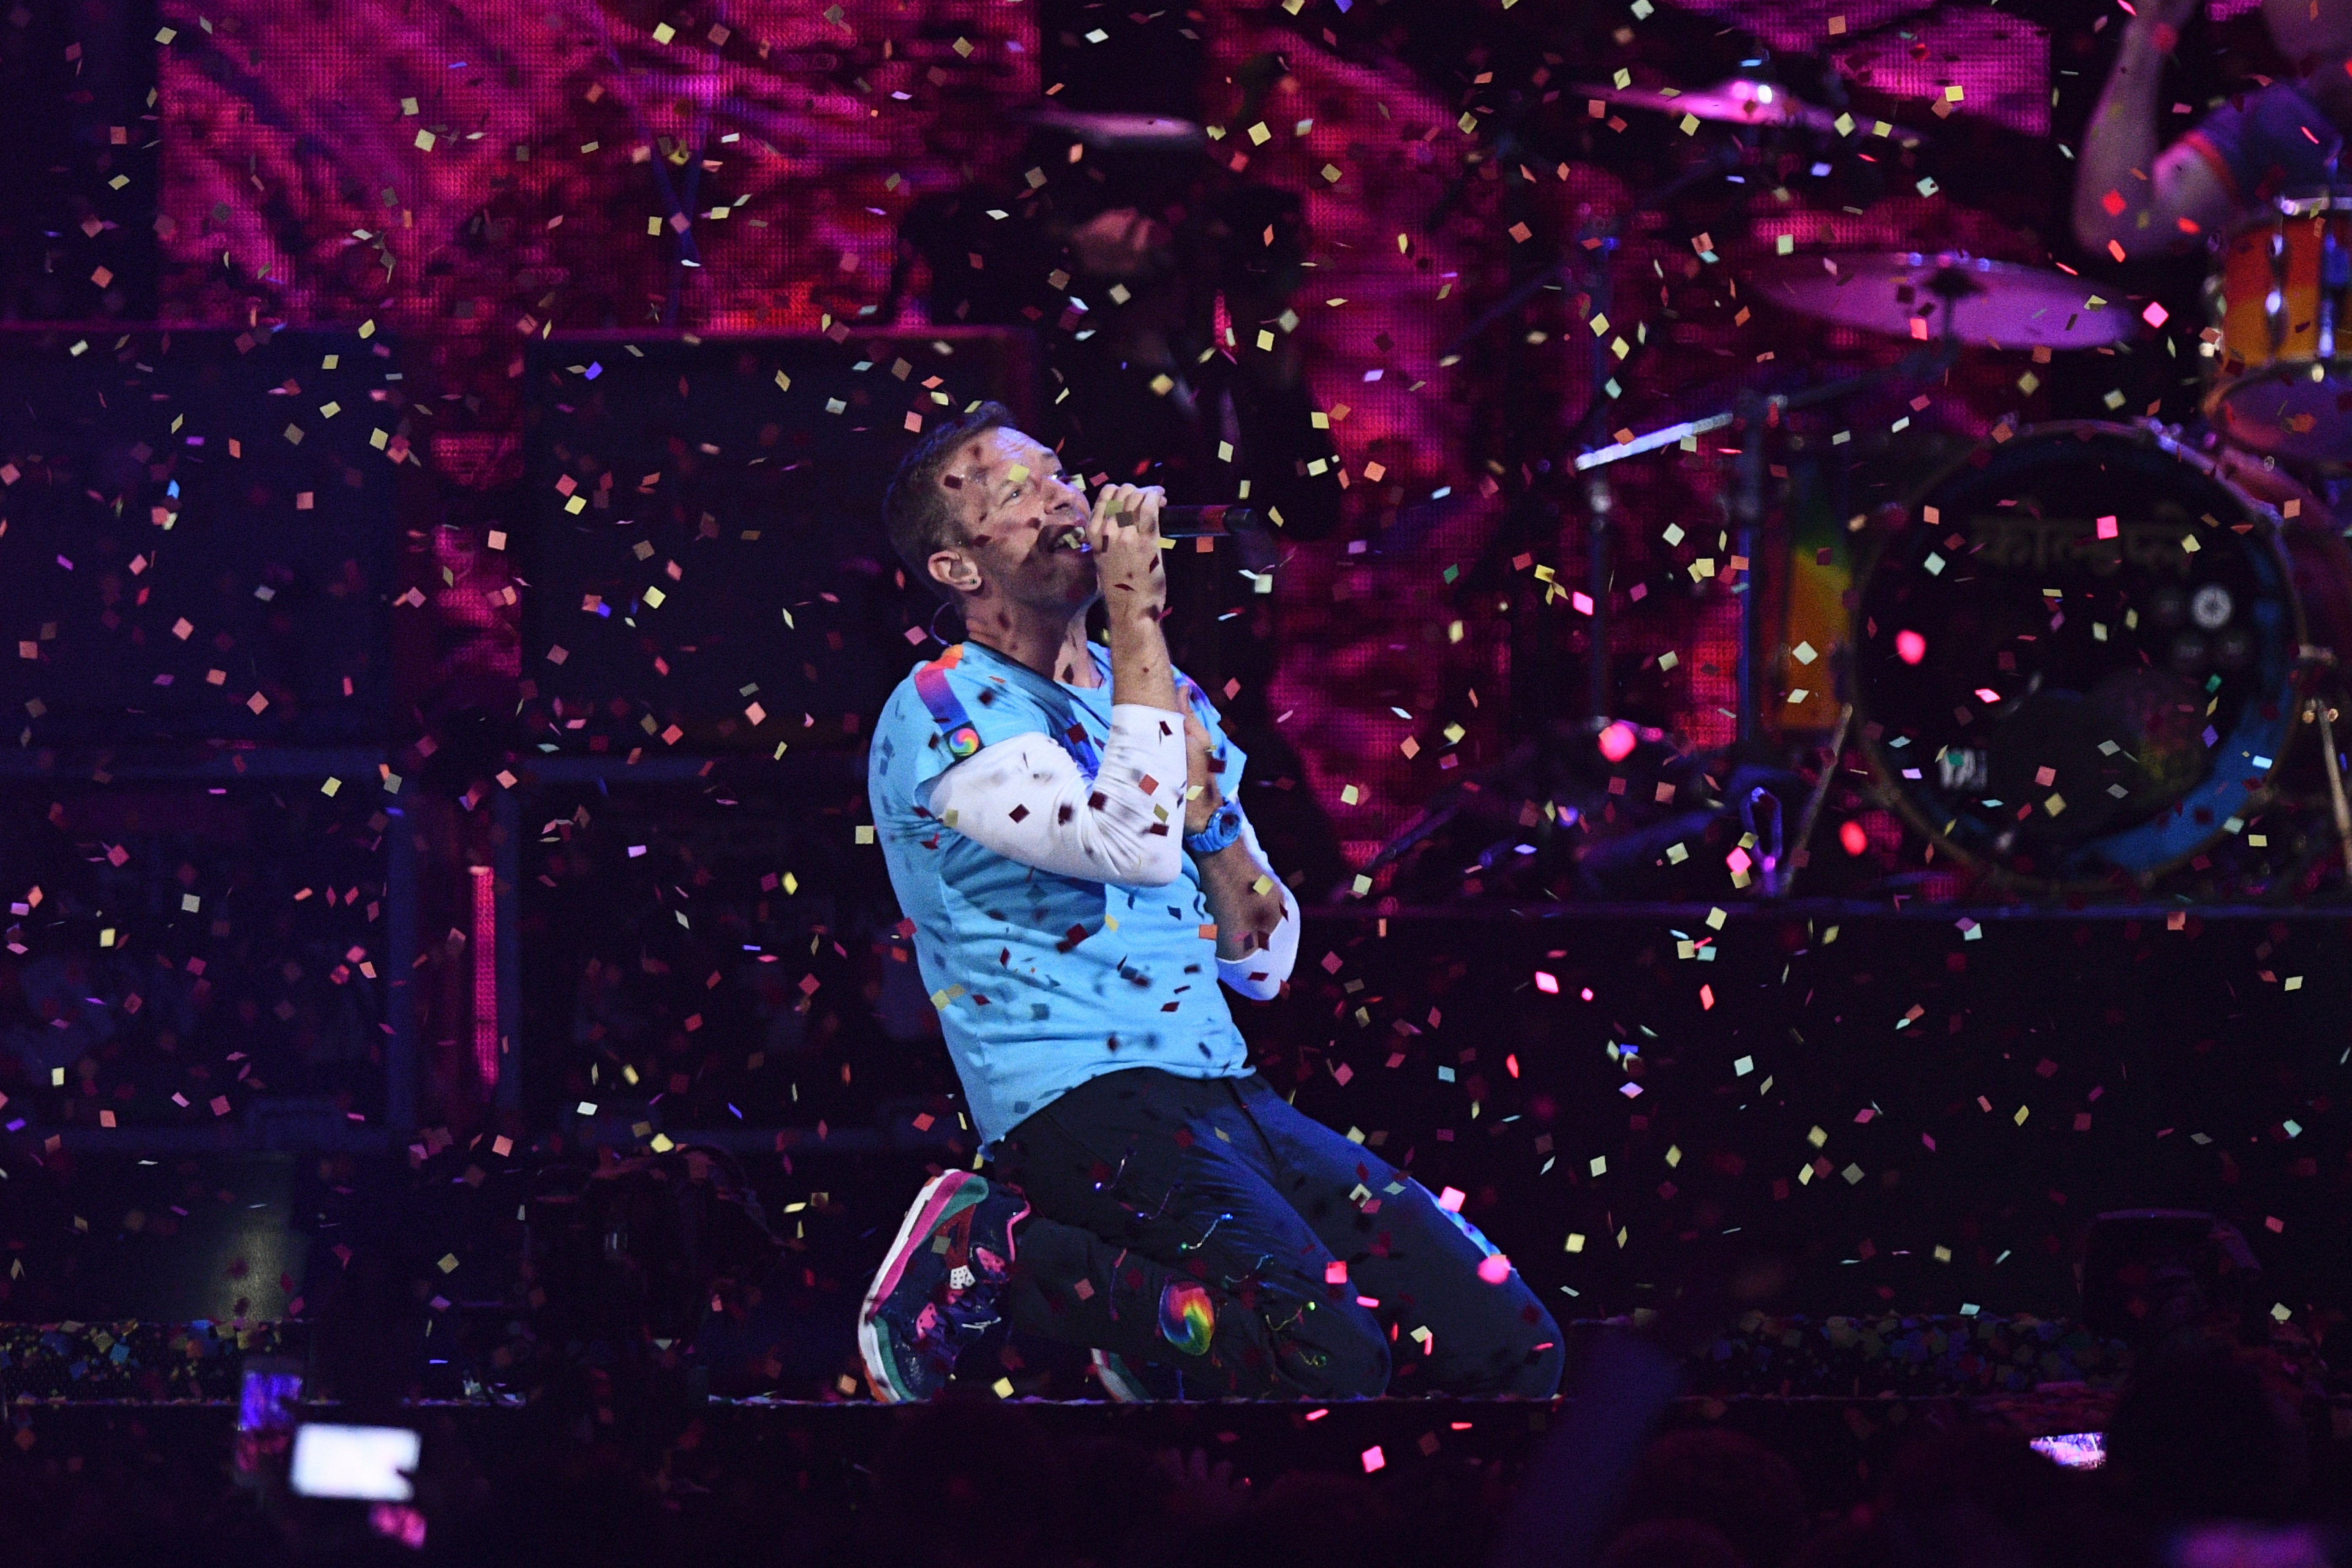 Chris Martin performs with The Chainsmokers during the BRIT Awards ceremony n London on February 22, 2017. (Photo by JUSTIN TALLIS/AFP/Getty Images)